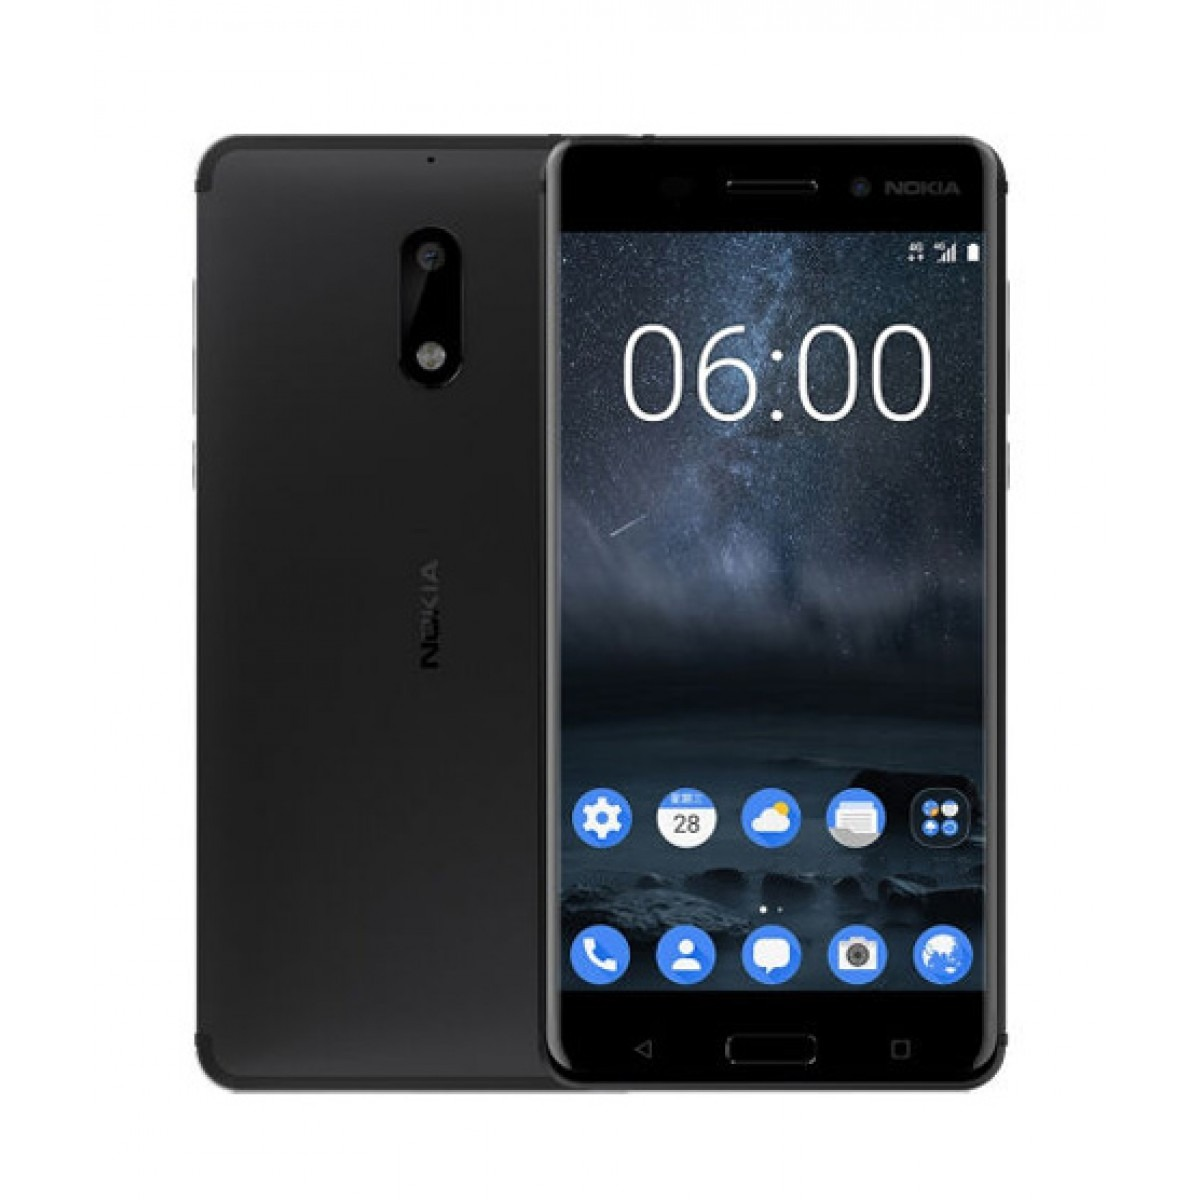 Nokia 6 Arte Black Video Nokia 6 Black